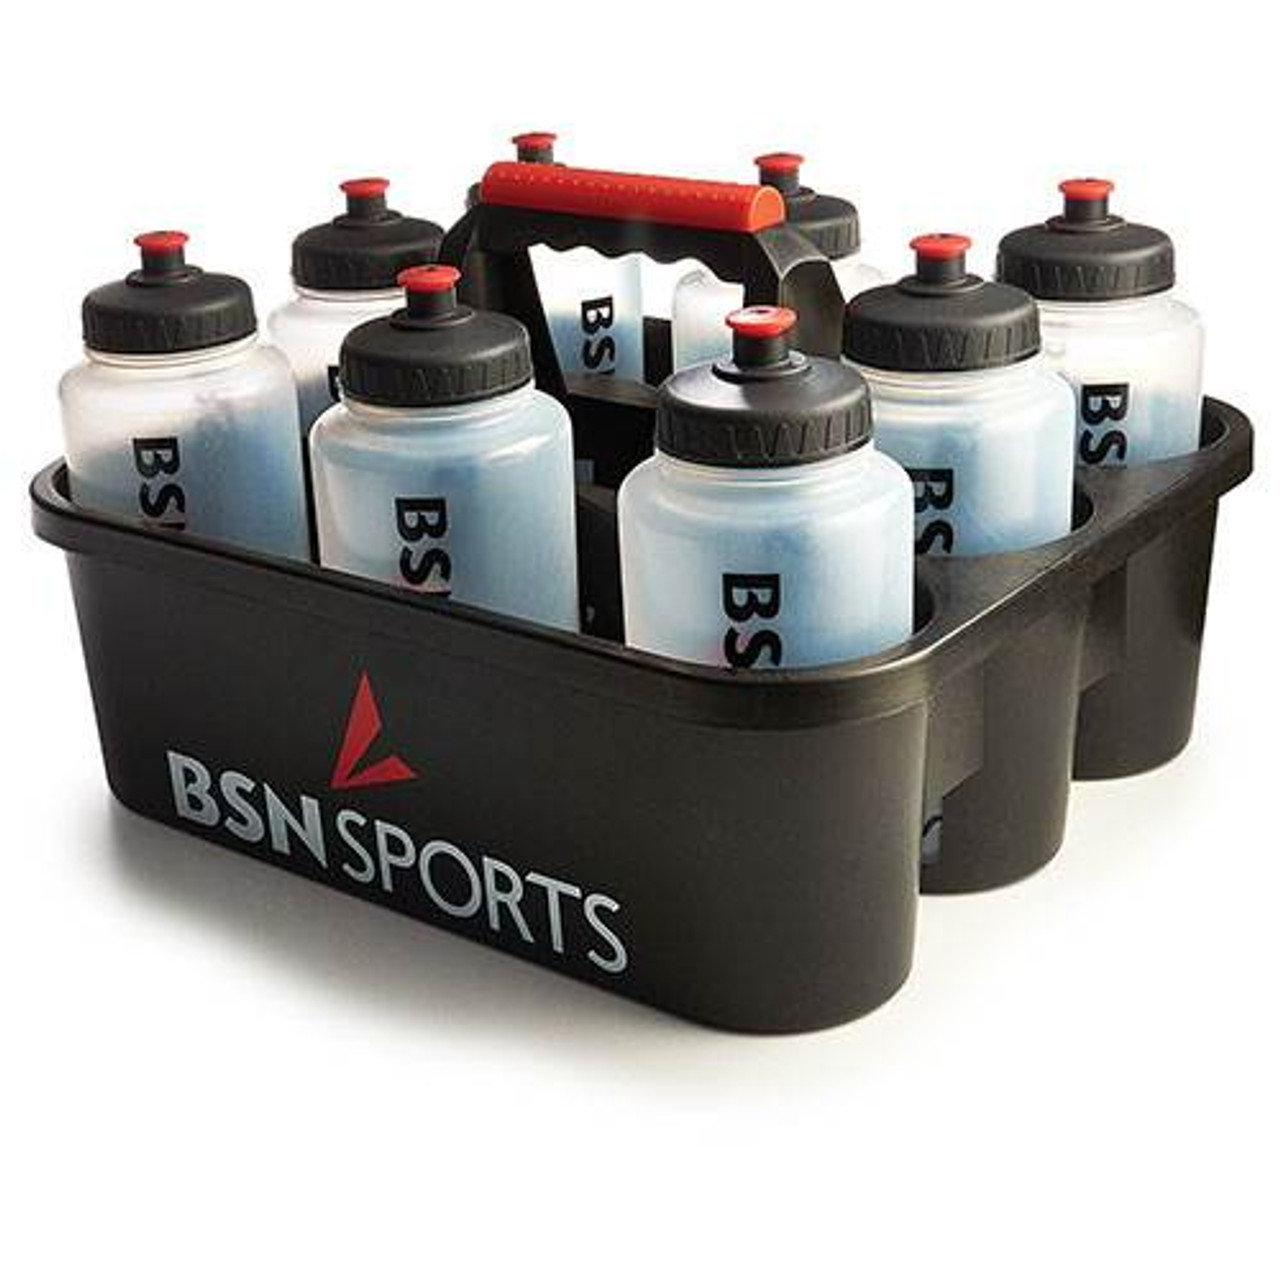 BSN SPORTS Water Bottle Carrier Only